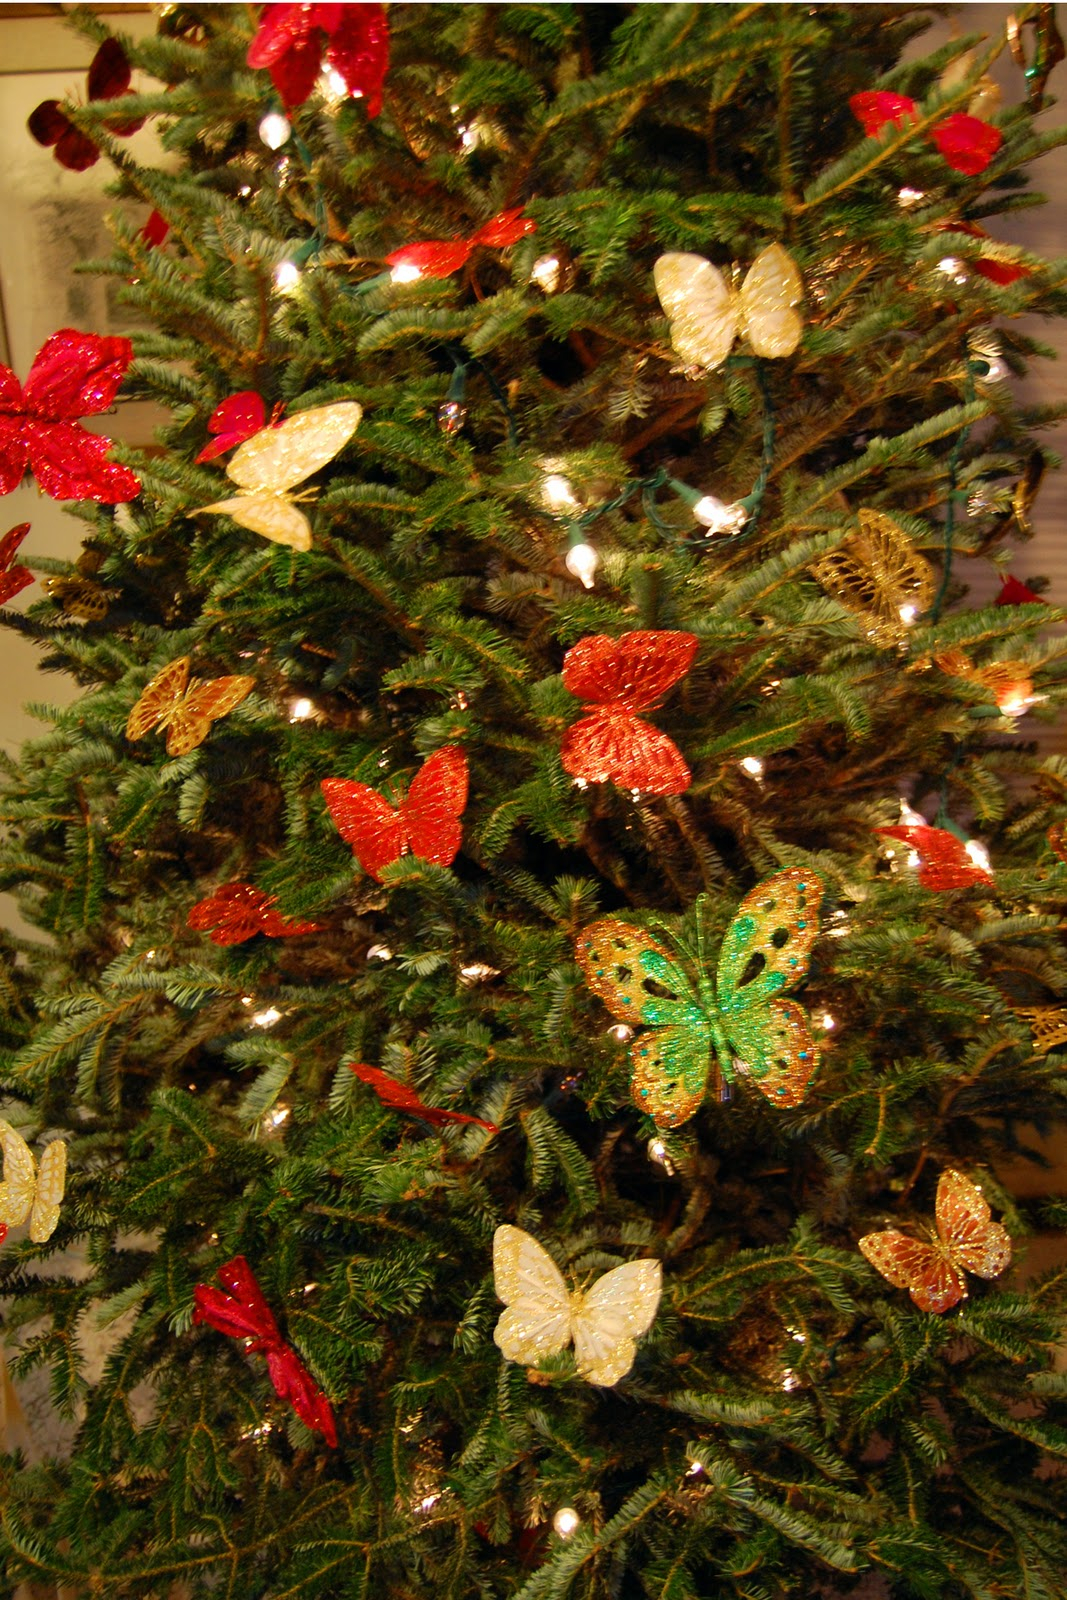 Donna and the bears let 39 s get this decorating done for Where do christmas trees come from